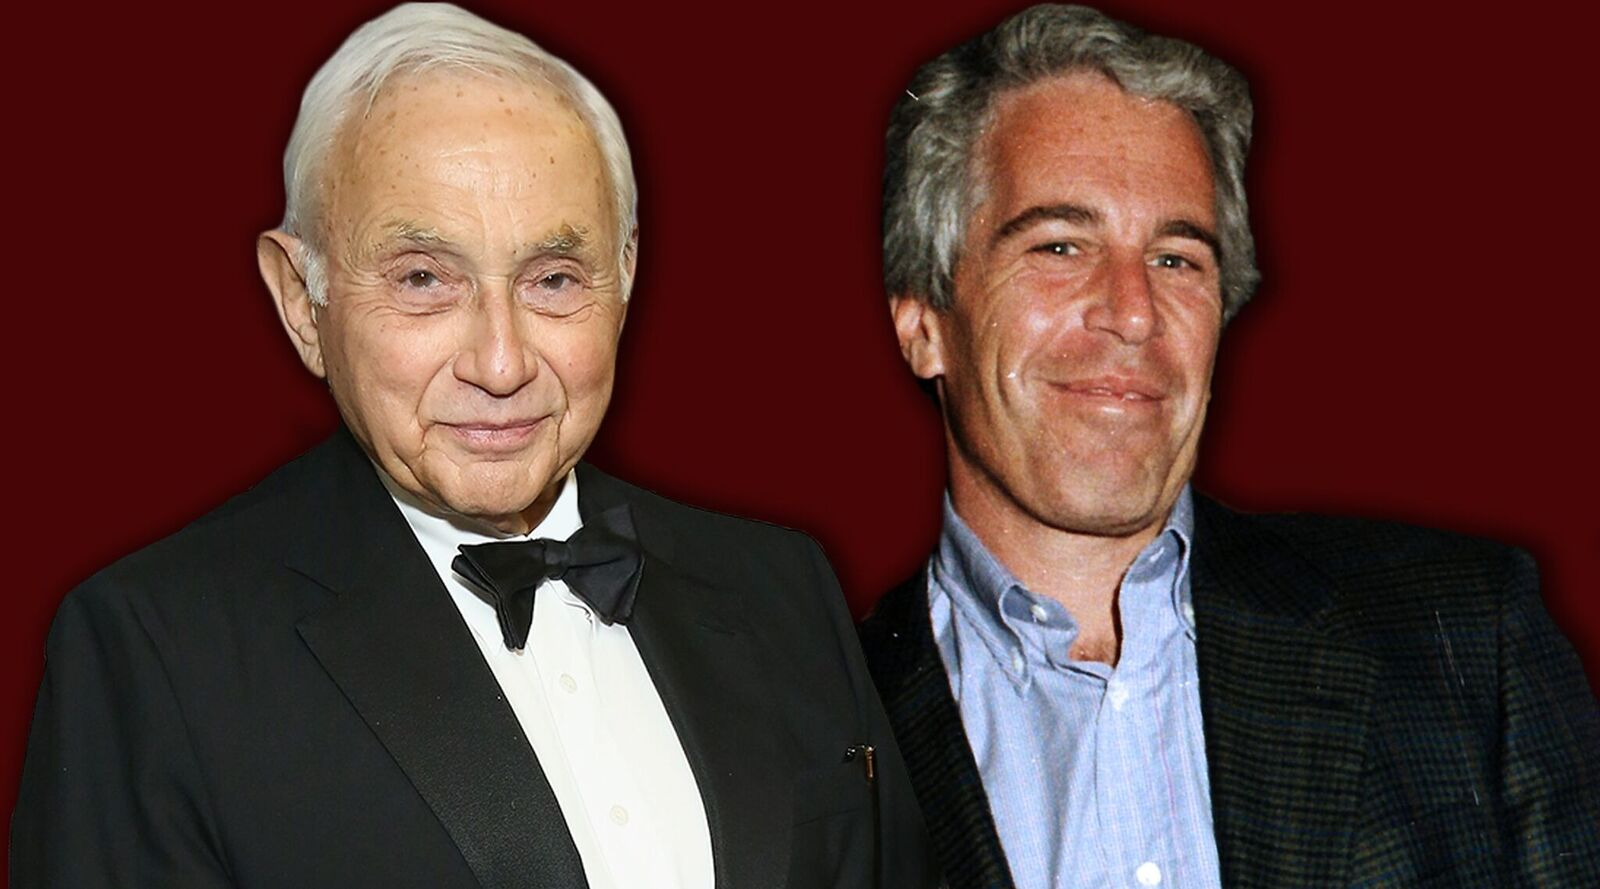 Leslie Wexner, left, and Jeffrey Epstein were close for years. Now Epstein's scandal is dogging the billionaire Jewish philanthropist. (Photos/Getty Images; Collage/JTA-Laura E. Adkins)